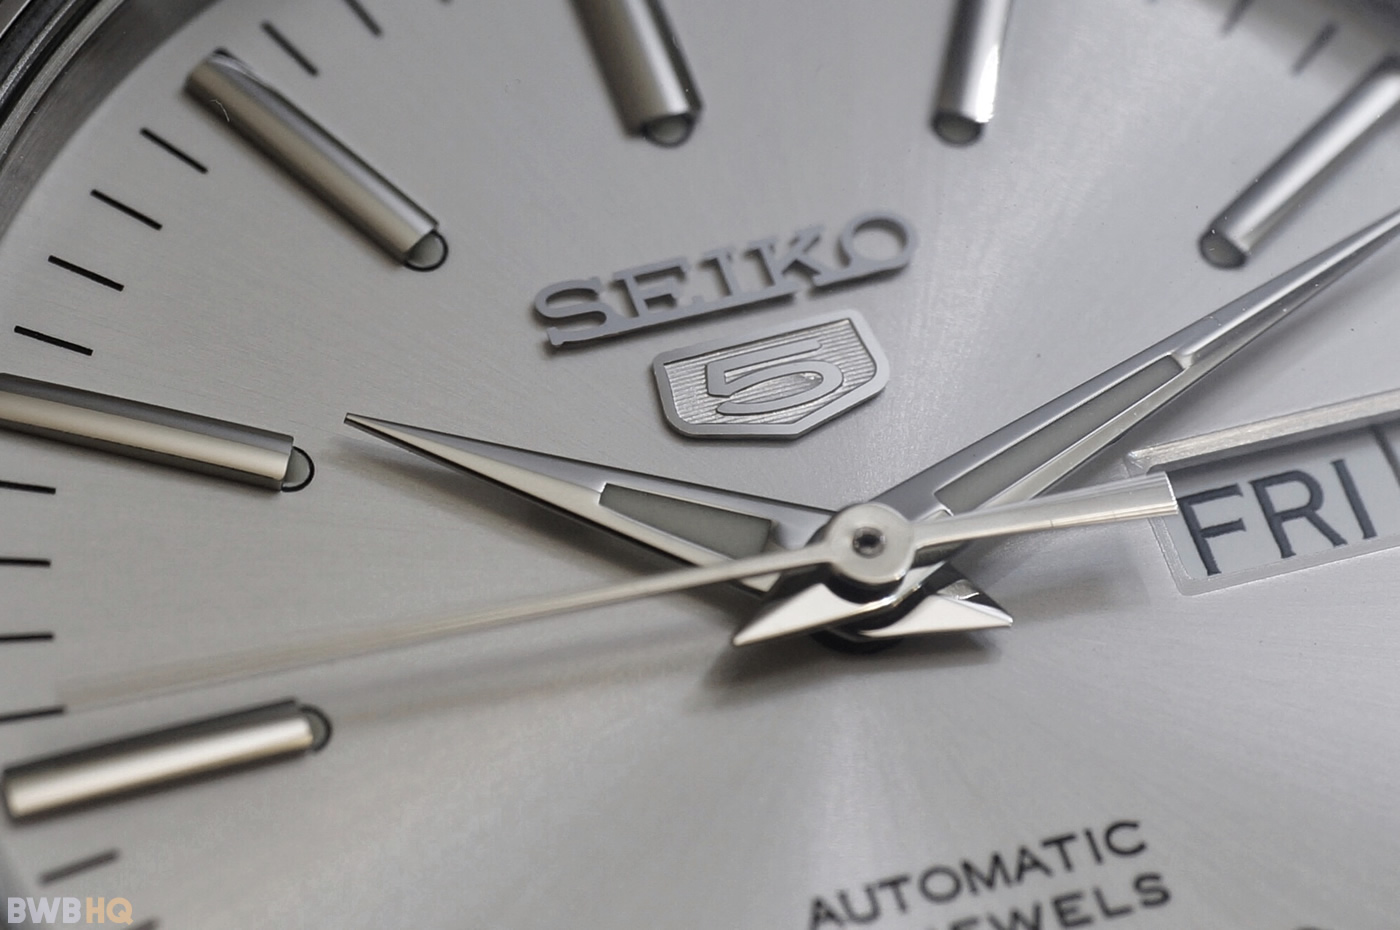 Review Seiko SNKL41 White Dial